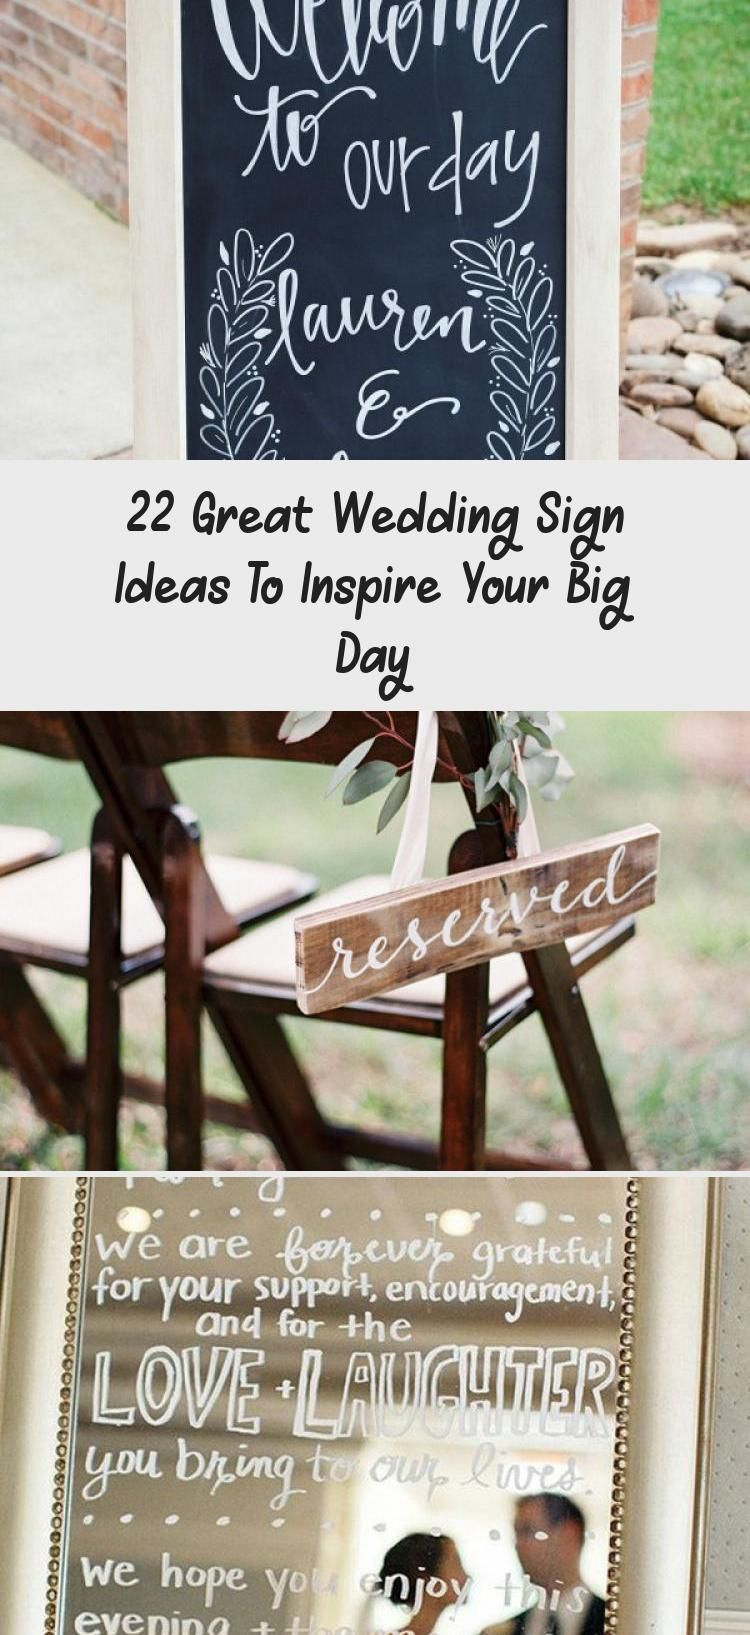 22 Great Wedding Sign Ideas To Inspire Your Big Day Wedding 2020